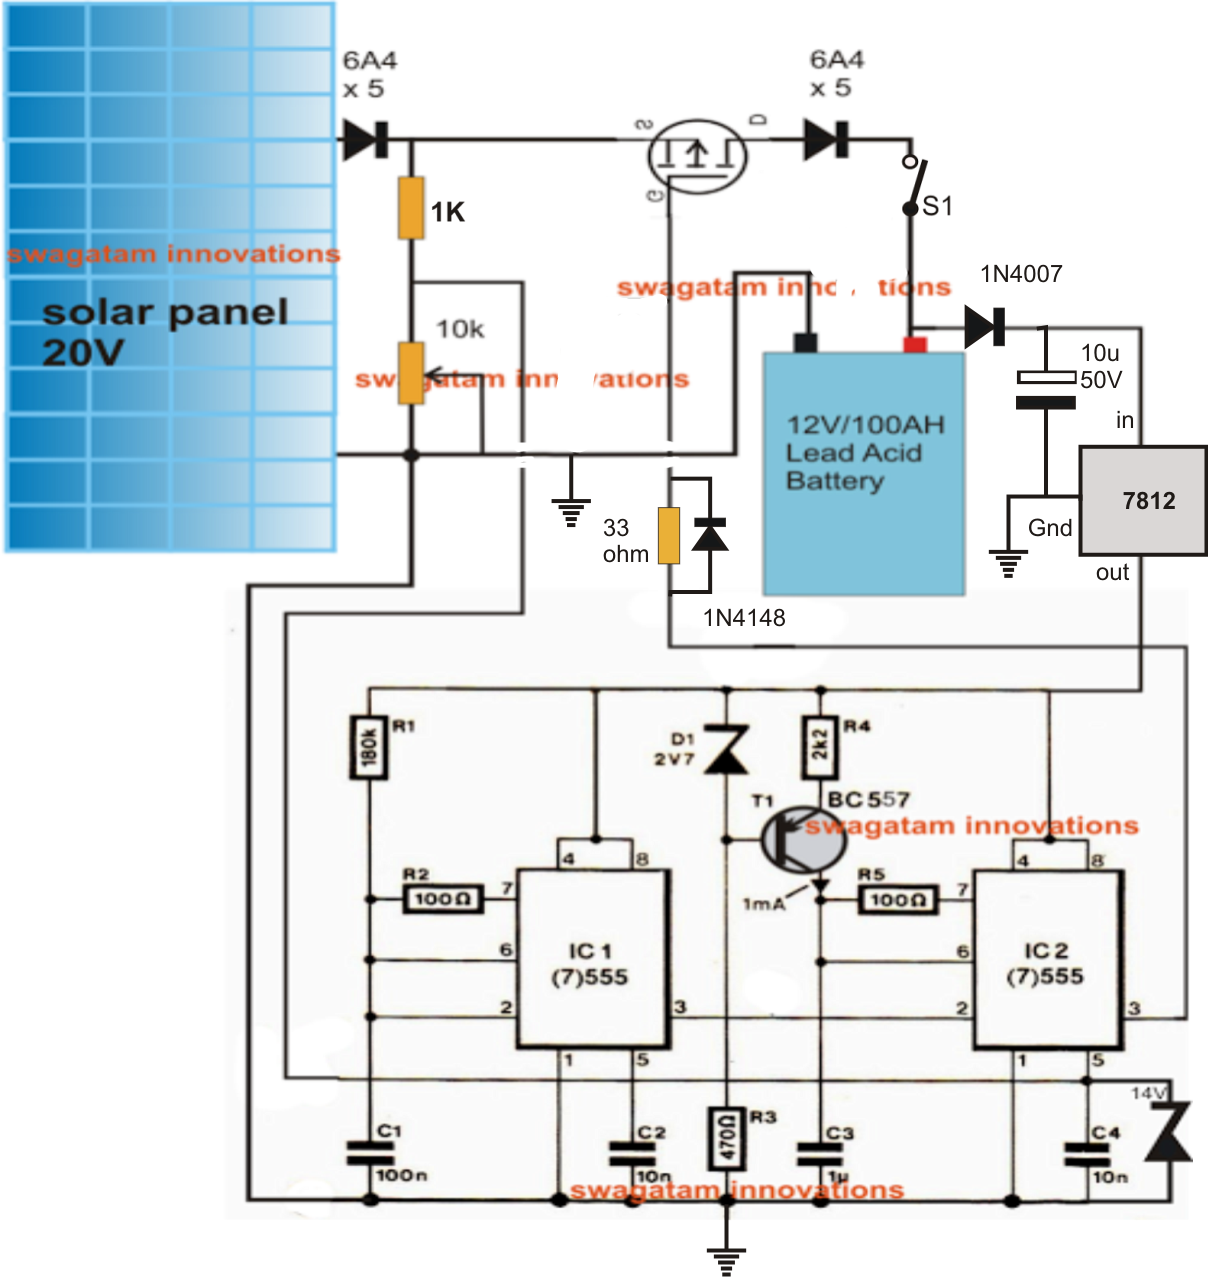 simple solar mppt circuit part 1 electronic circuit projects an enhanced and a technically more correct version of the above design using buck converter can be seen in this simple solar mppt circuit part 2